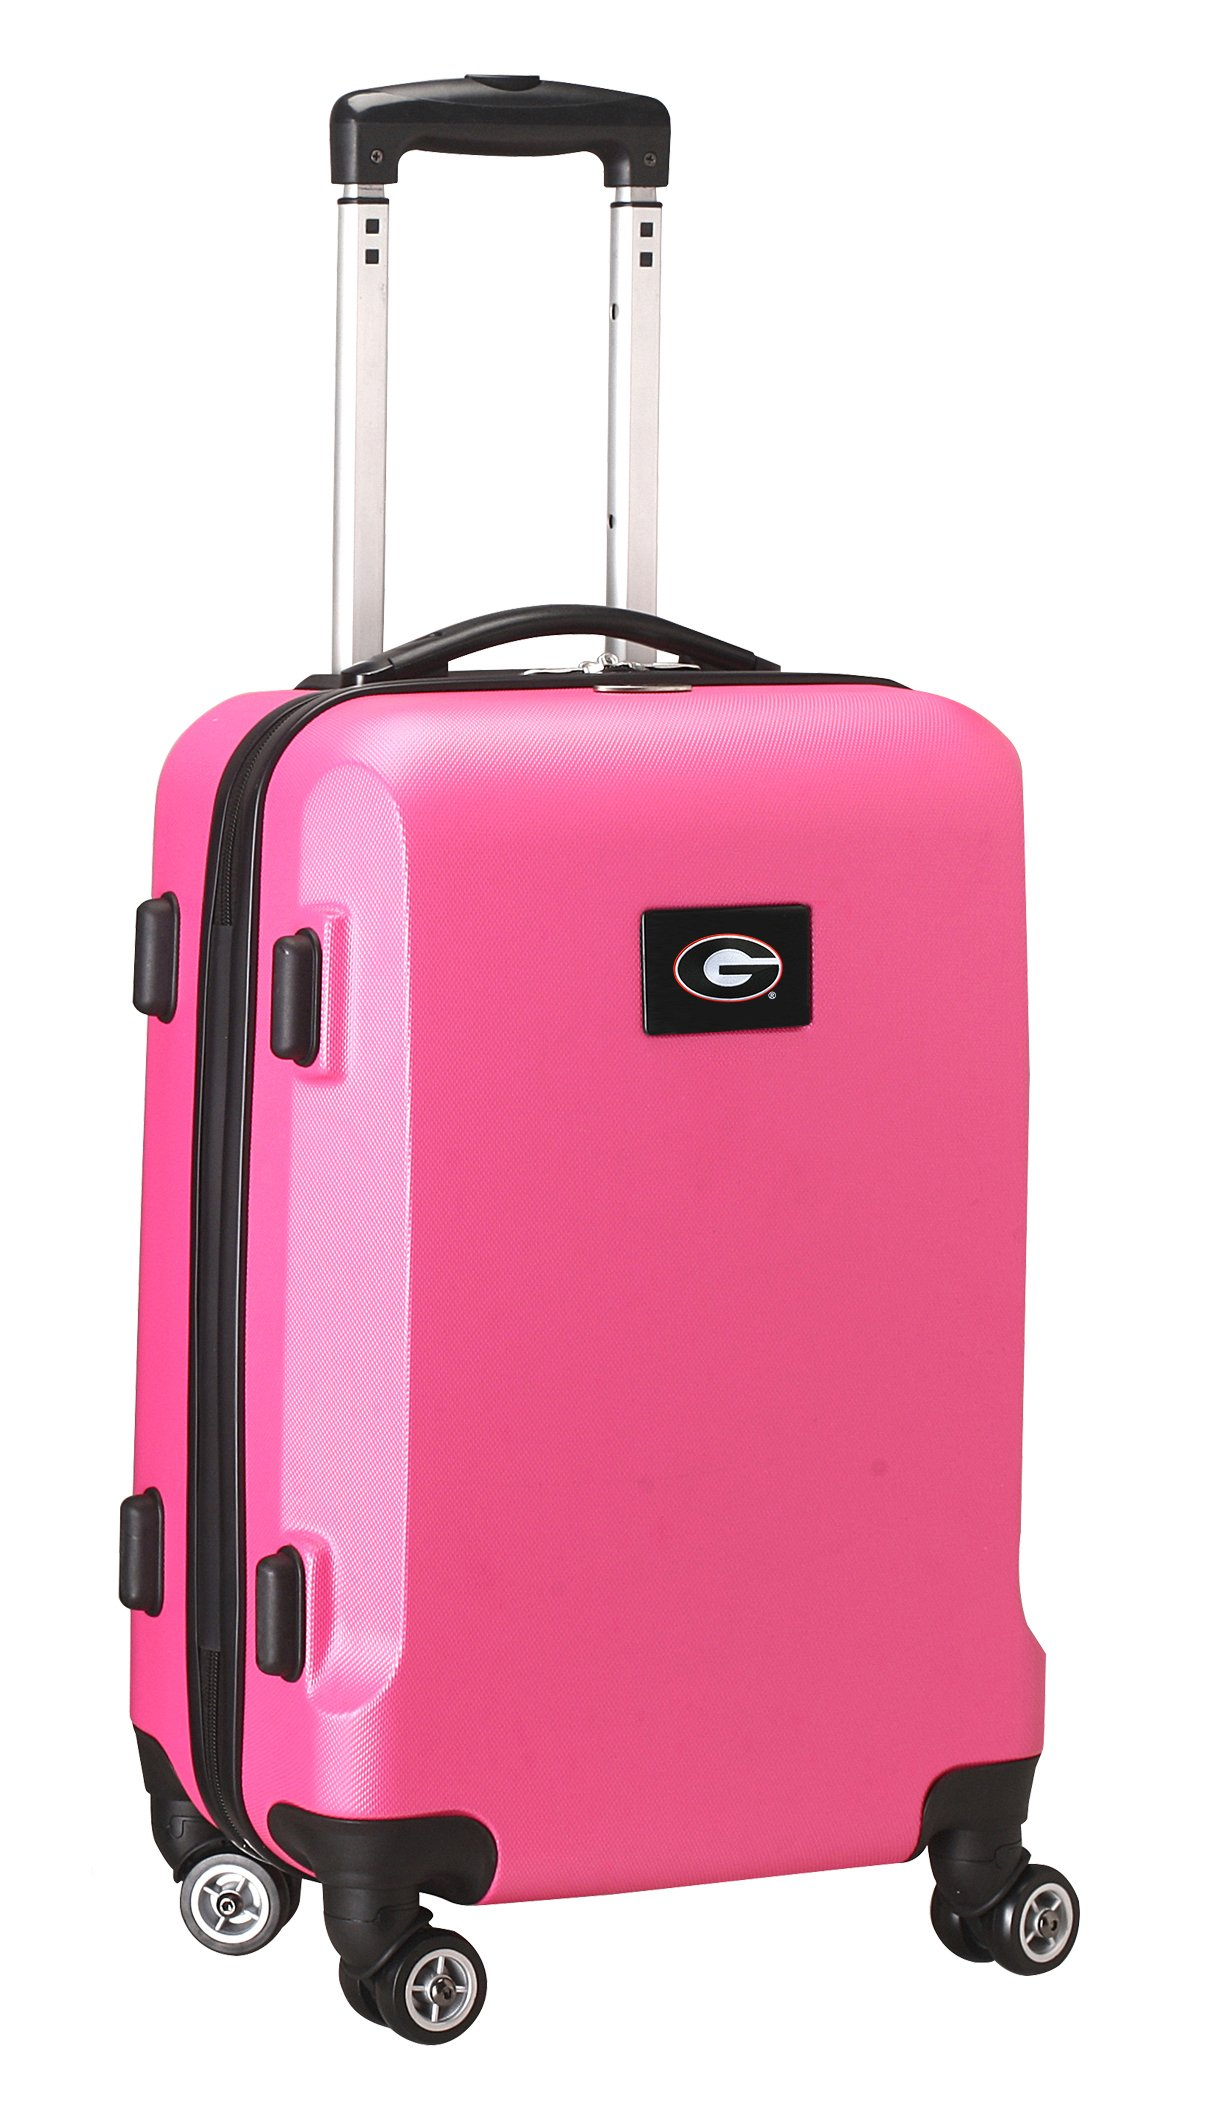 Denco NCAA Georgia Bulldogs Carry-On Hardcase Luggage Spinner, Pink